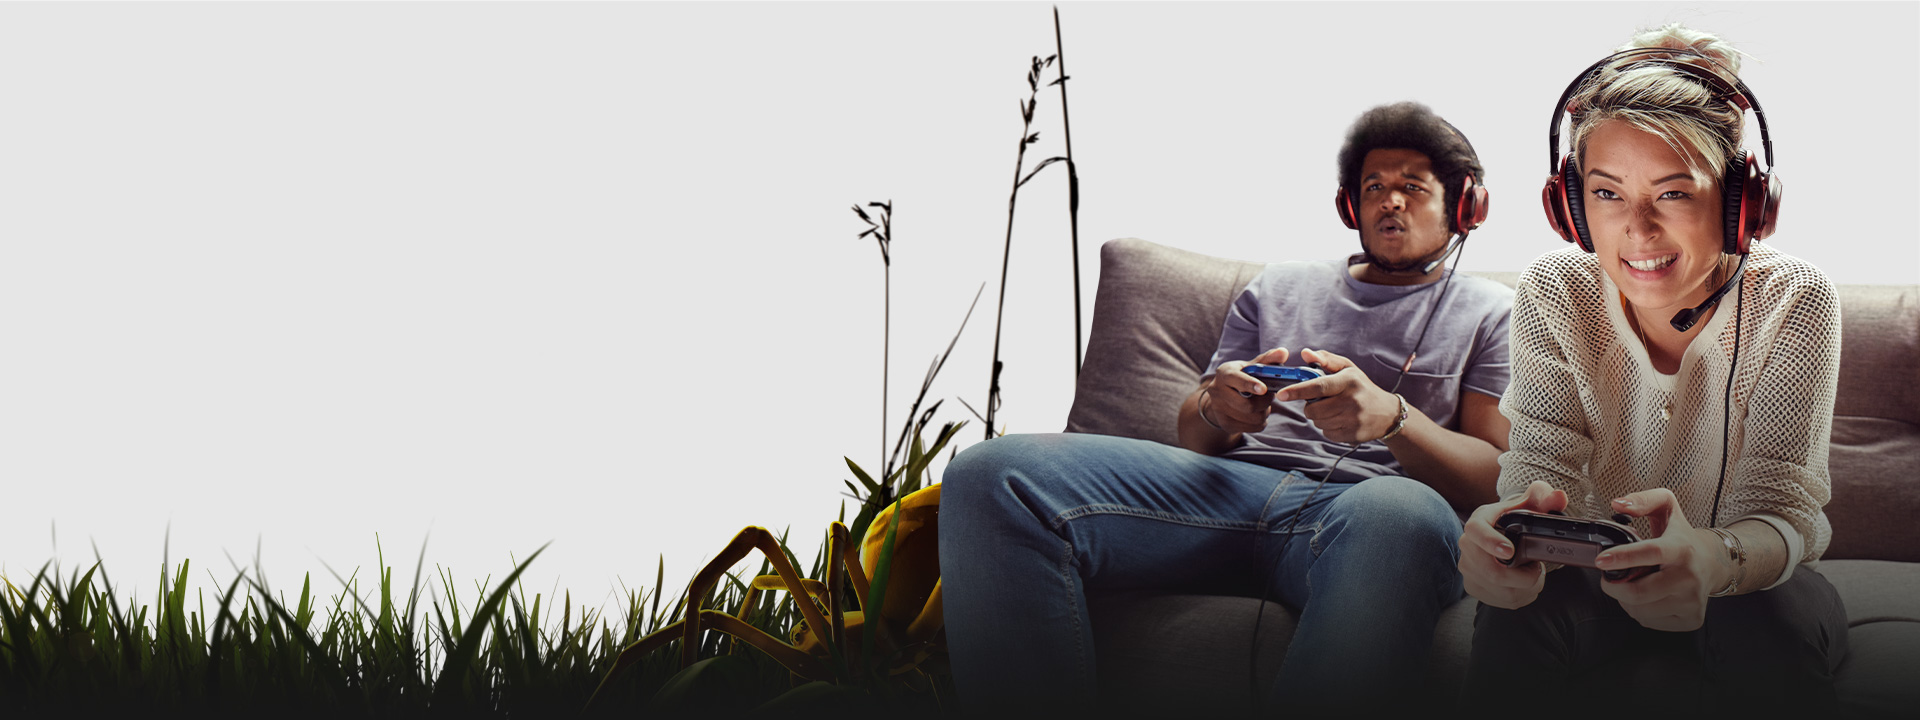 Two gamers sitting on a sofa in a grassy scene from Grounded